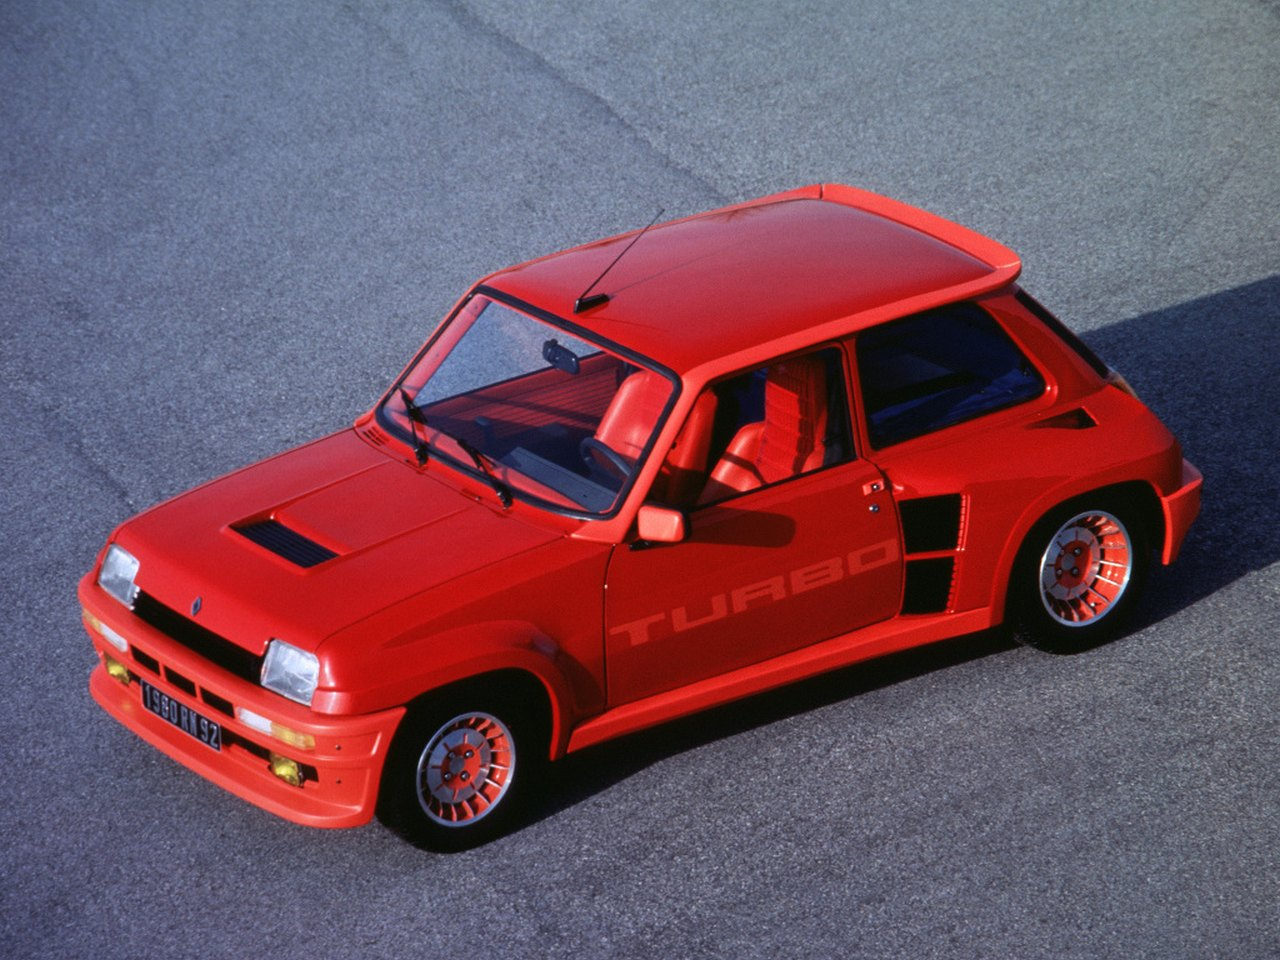 renault 5 turbo youngtimer in beeld. Black Bedroom Furniture Sets. Home Design Ideas